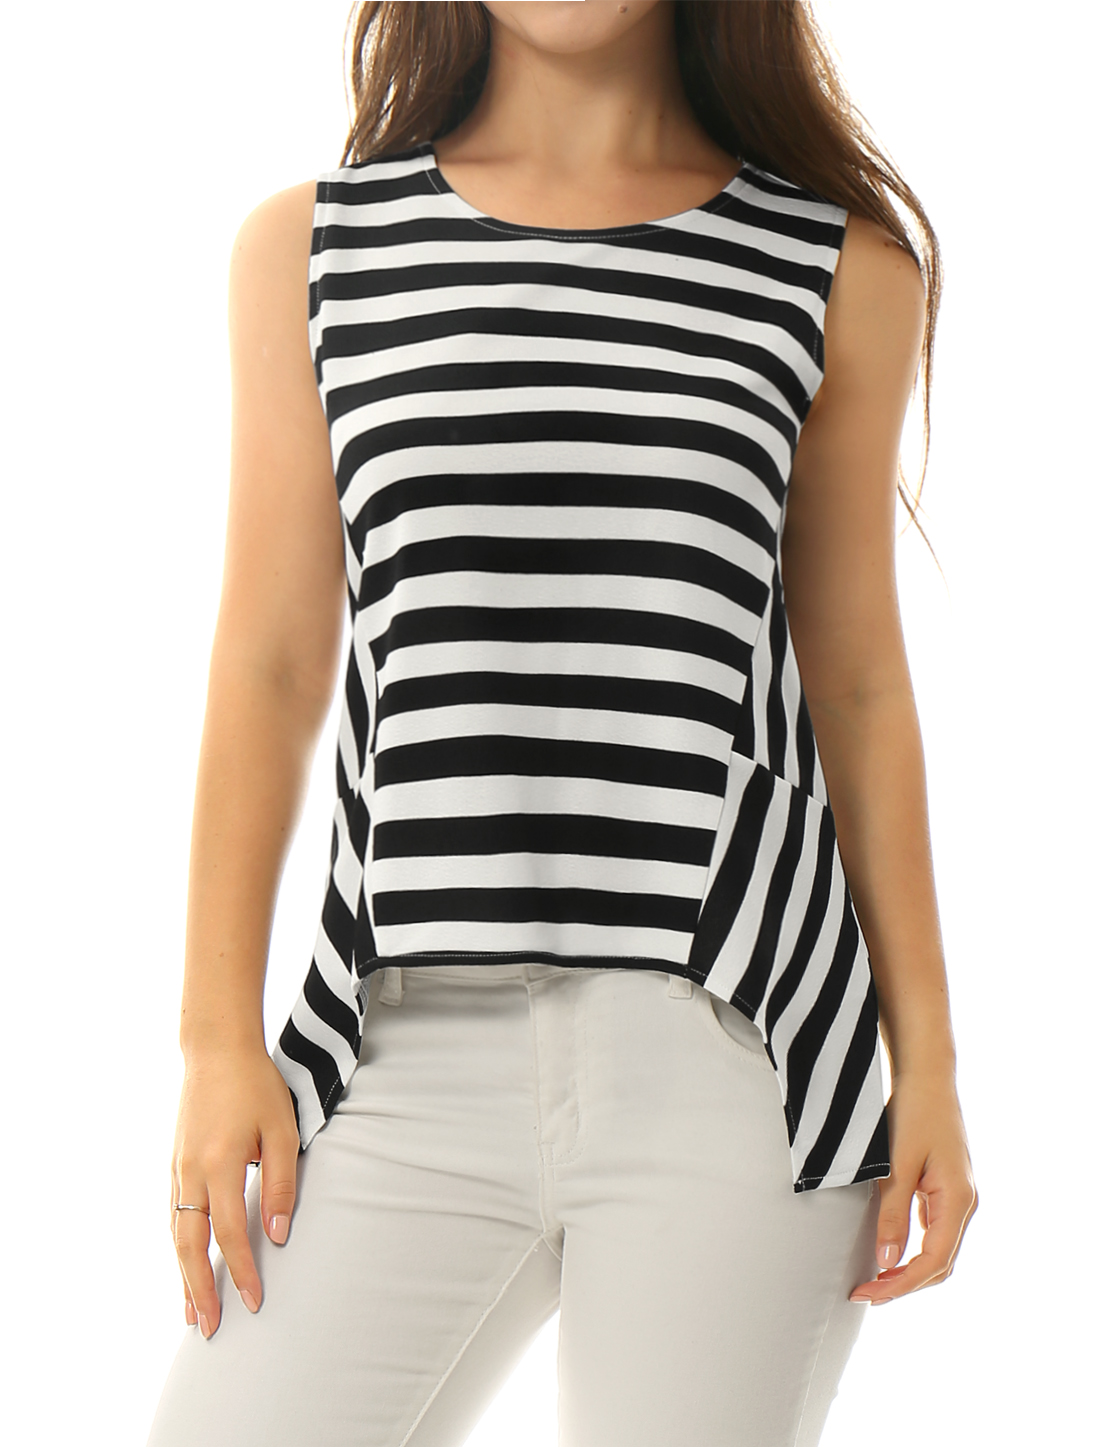 Women Stripes Asymmetric Hem Round Neck Tank Top White Black L